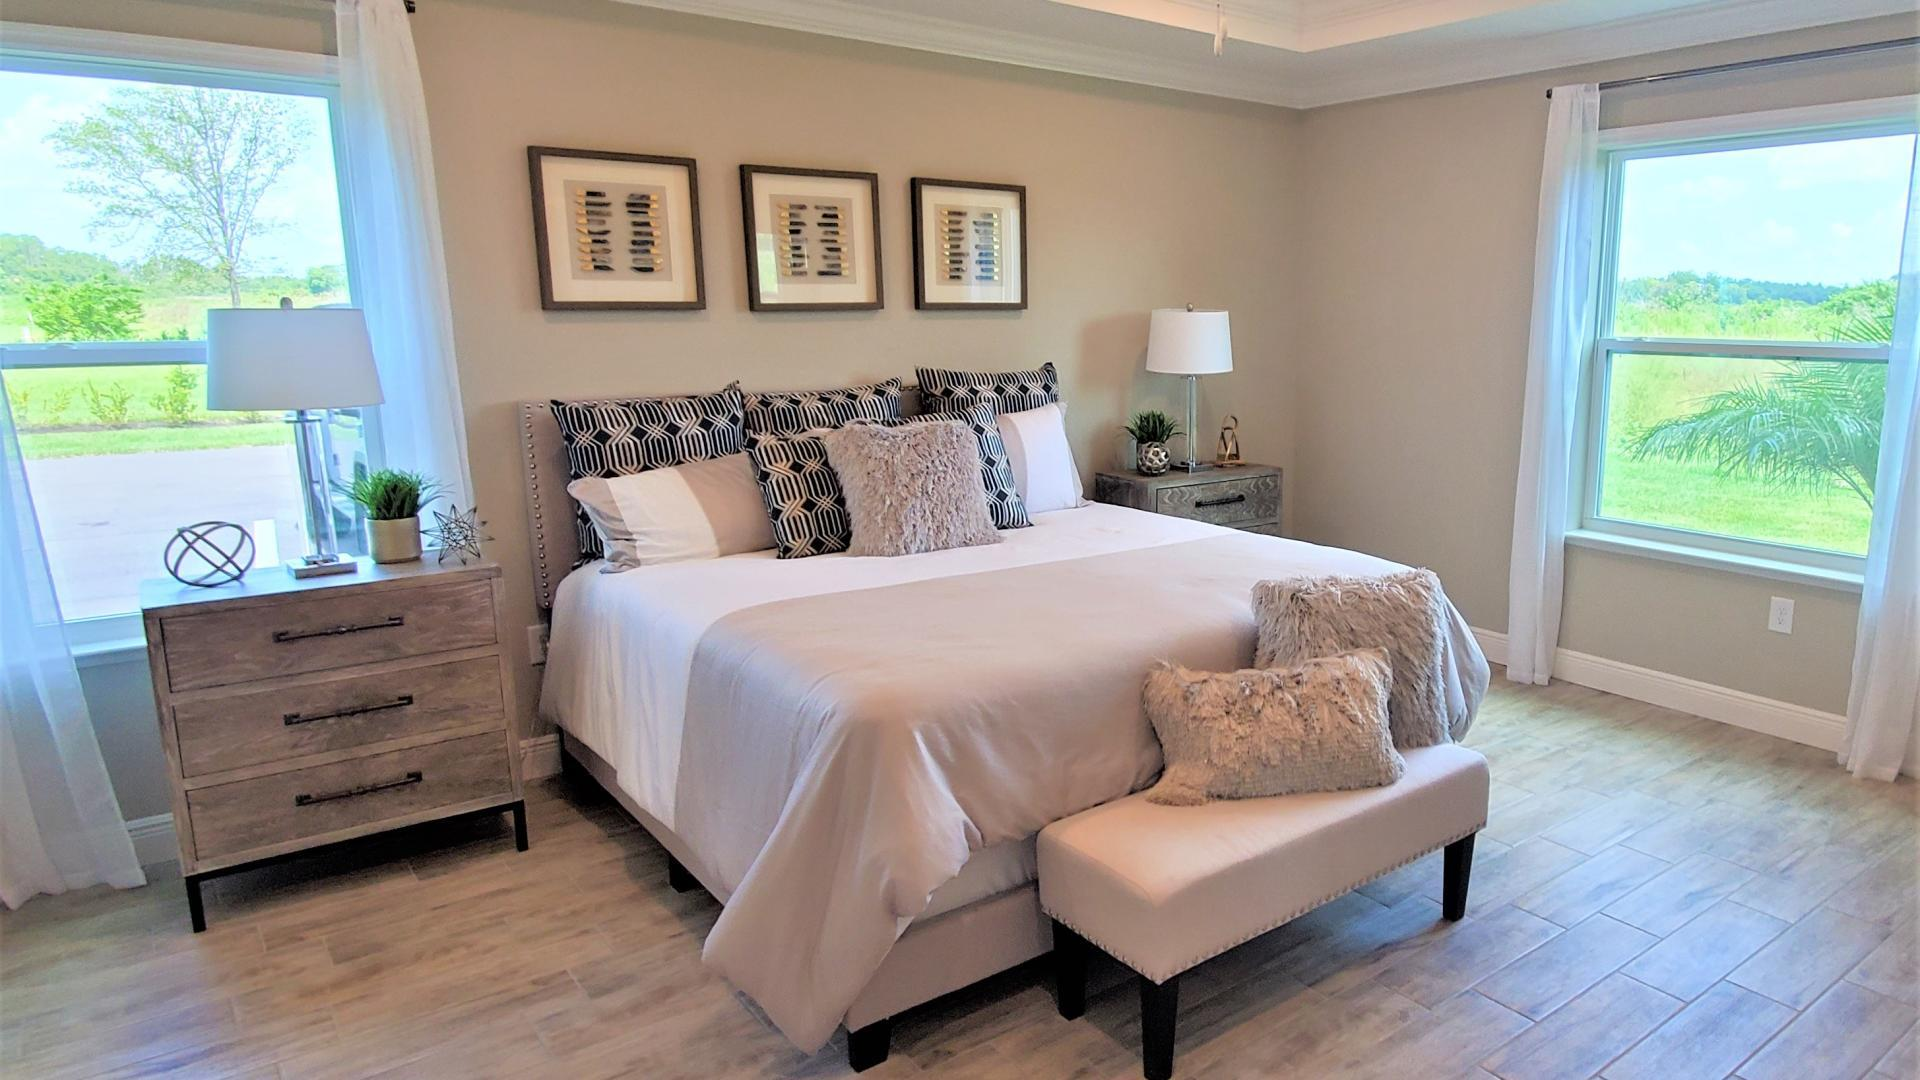 Bedroom featured in the Miramar By Maronda Homes in Fort Myers, FL